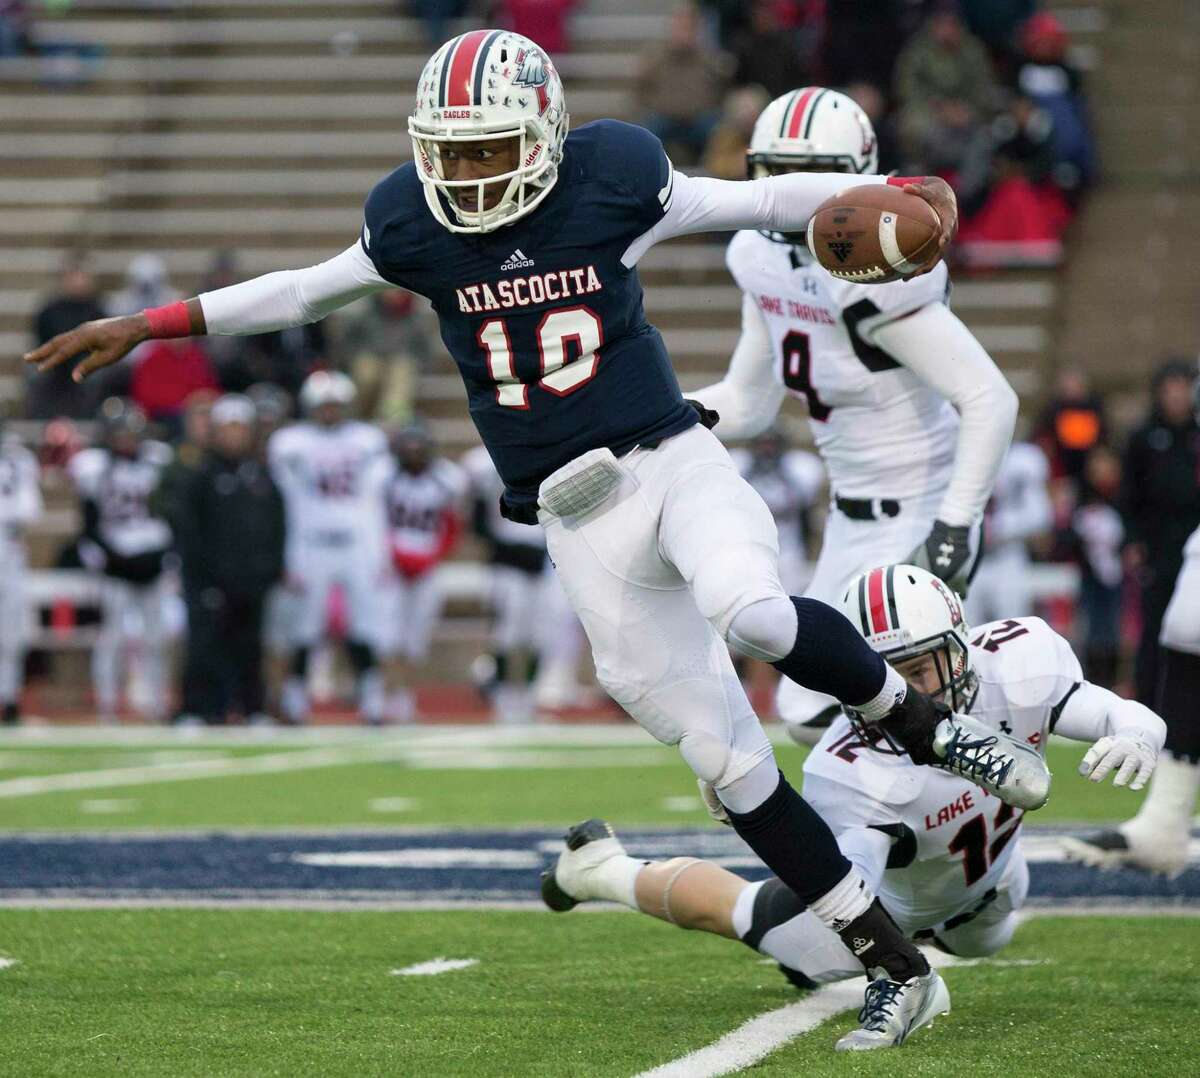 Eagles quarterback Greg Campbell breaks up the field during Atascocita's 16-41 loss to Lake Travis on Nov. 23, 2013, at Merrill Green Stadium in Bryan, TX.